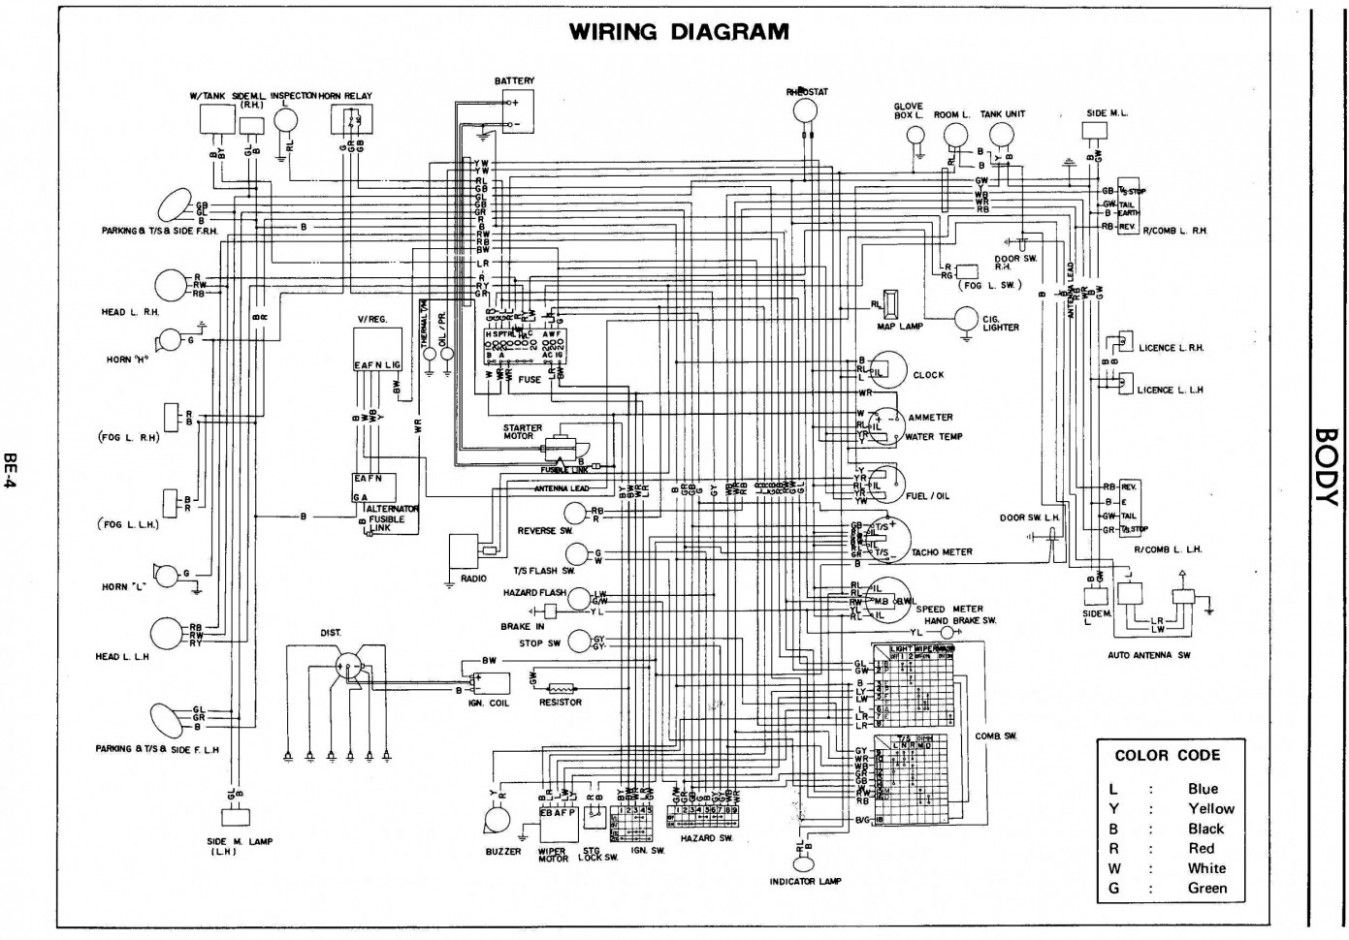 Engine Diagram W8 Pdf Engine Diagram W8 Pdf